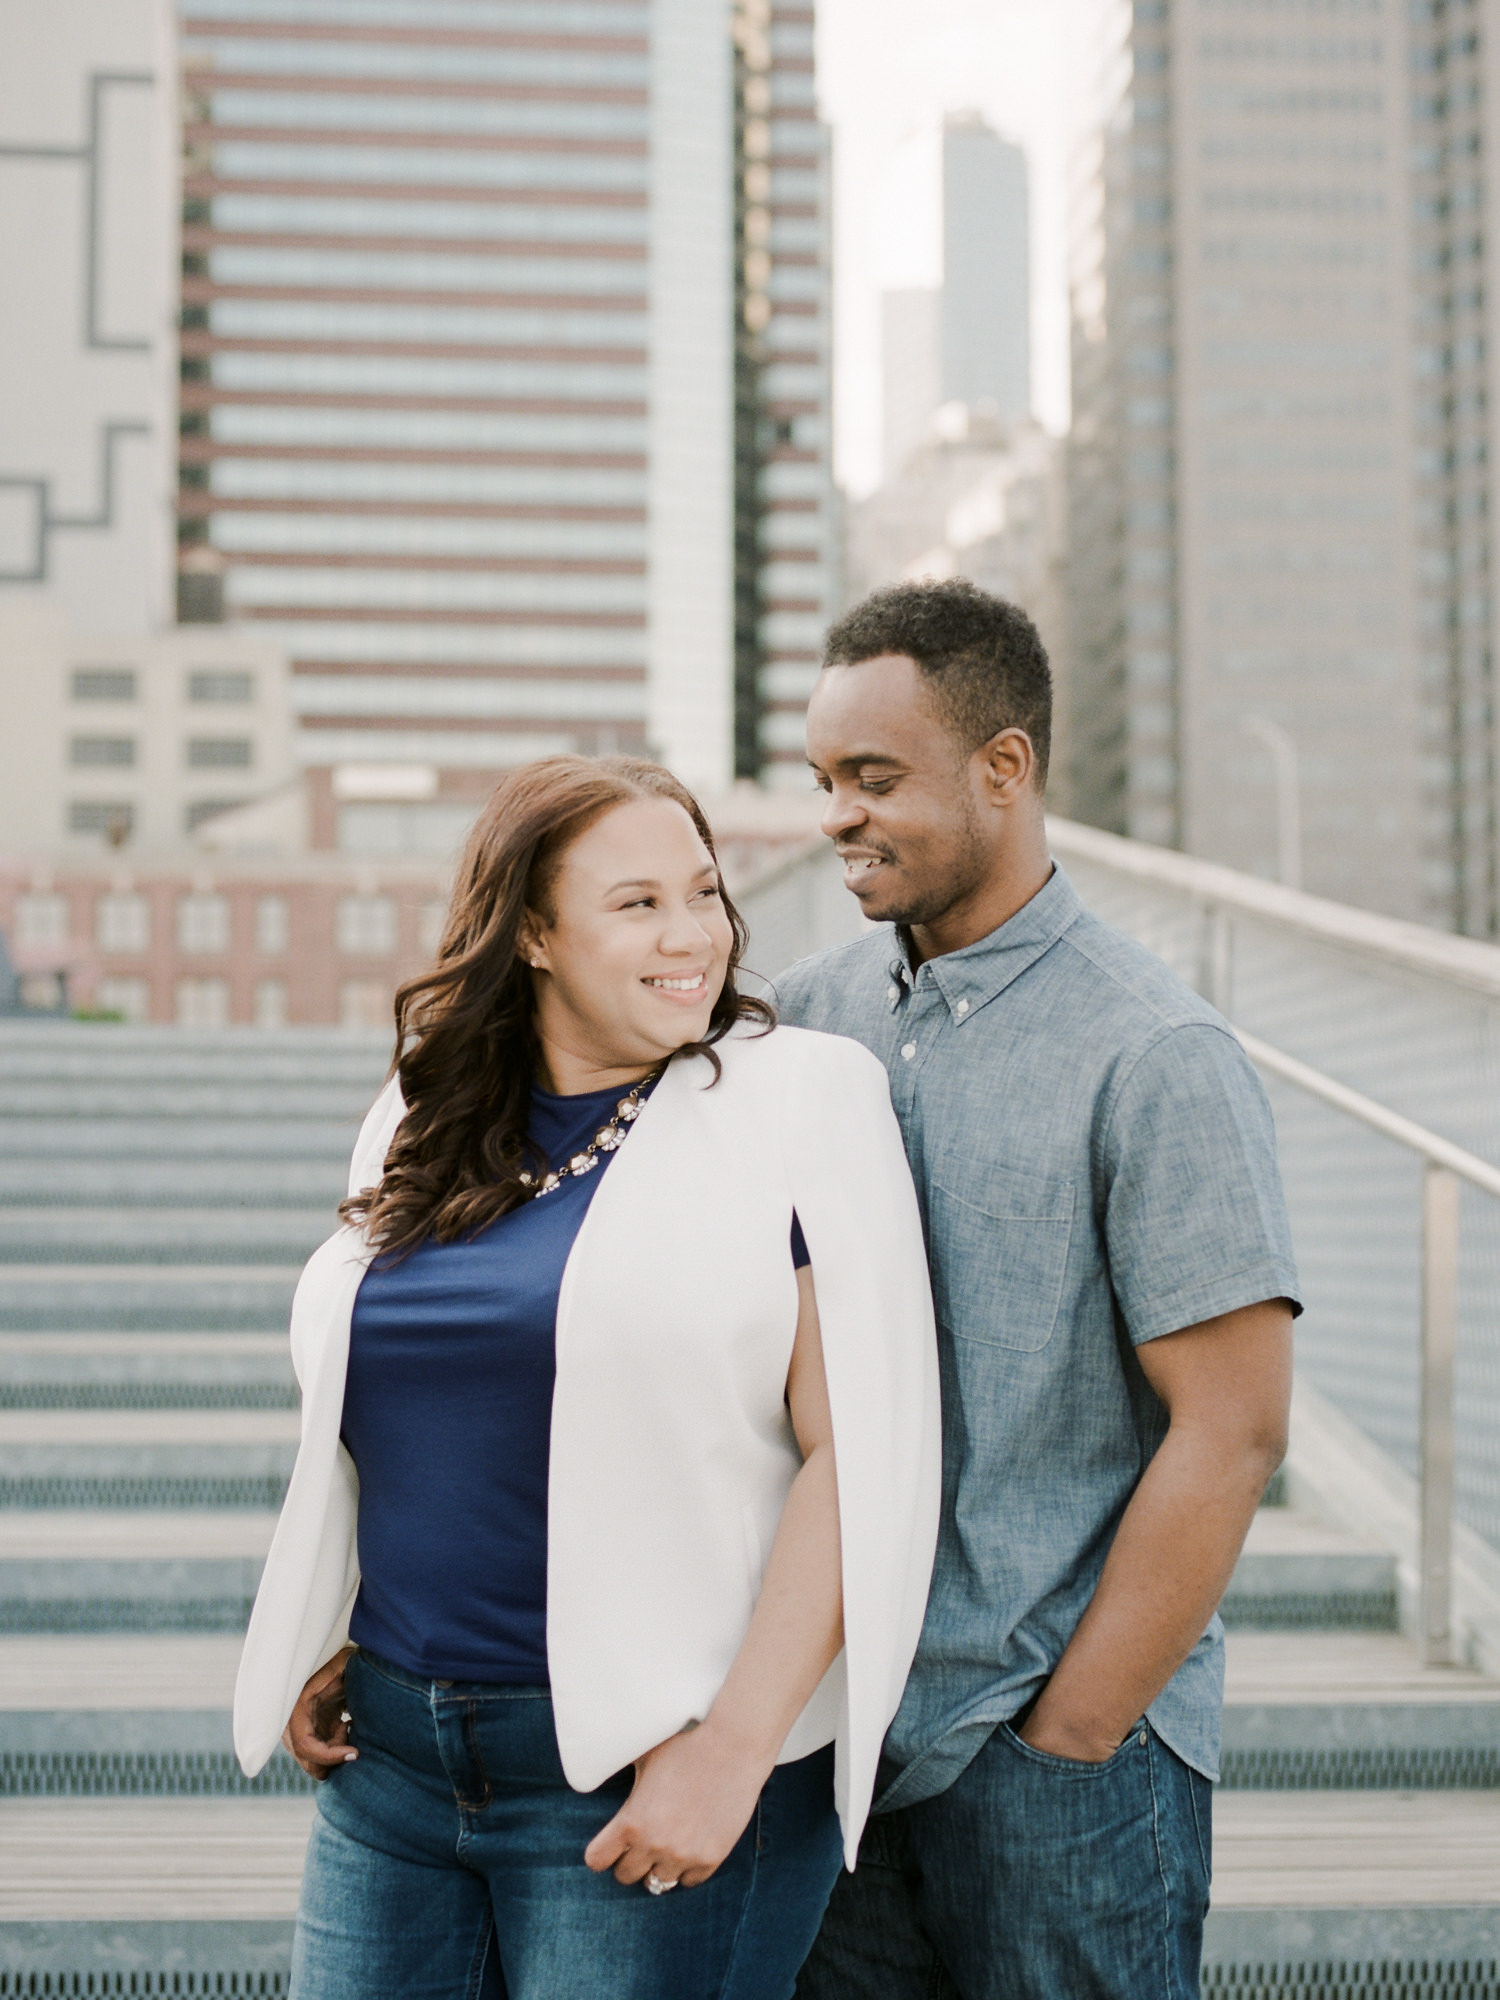 NYC-South-street-seaport-engagement-session-52.jpg